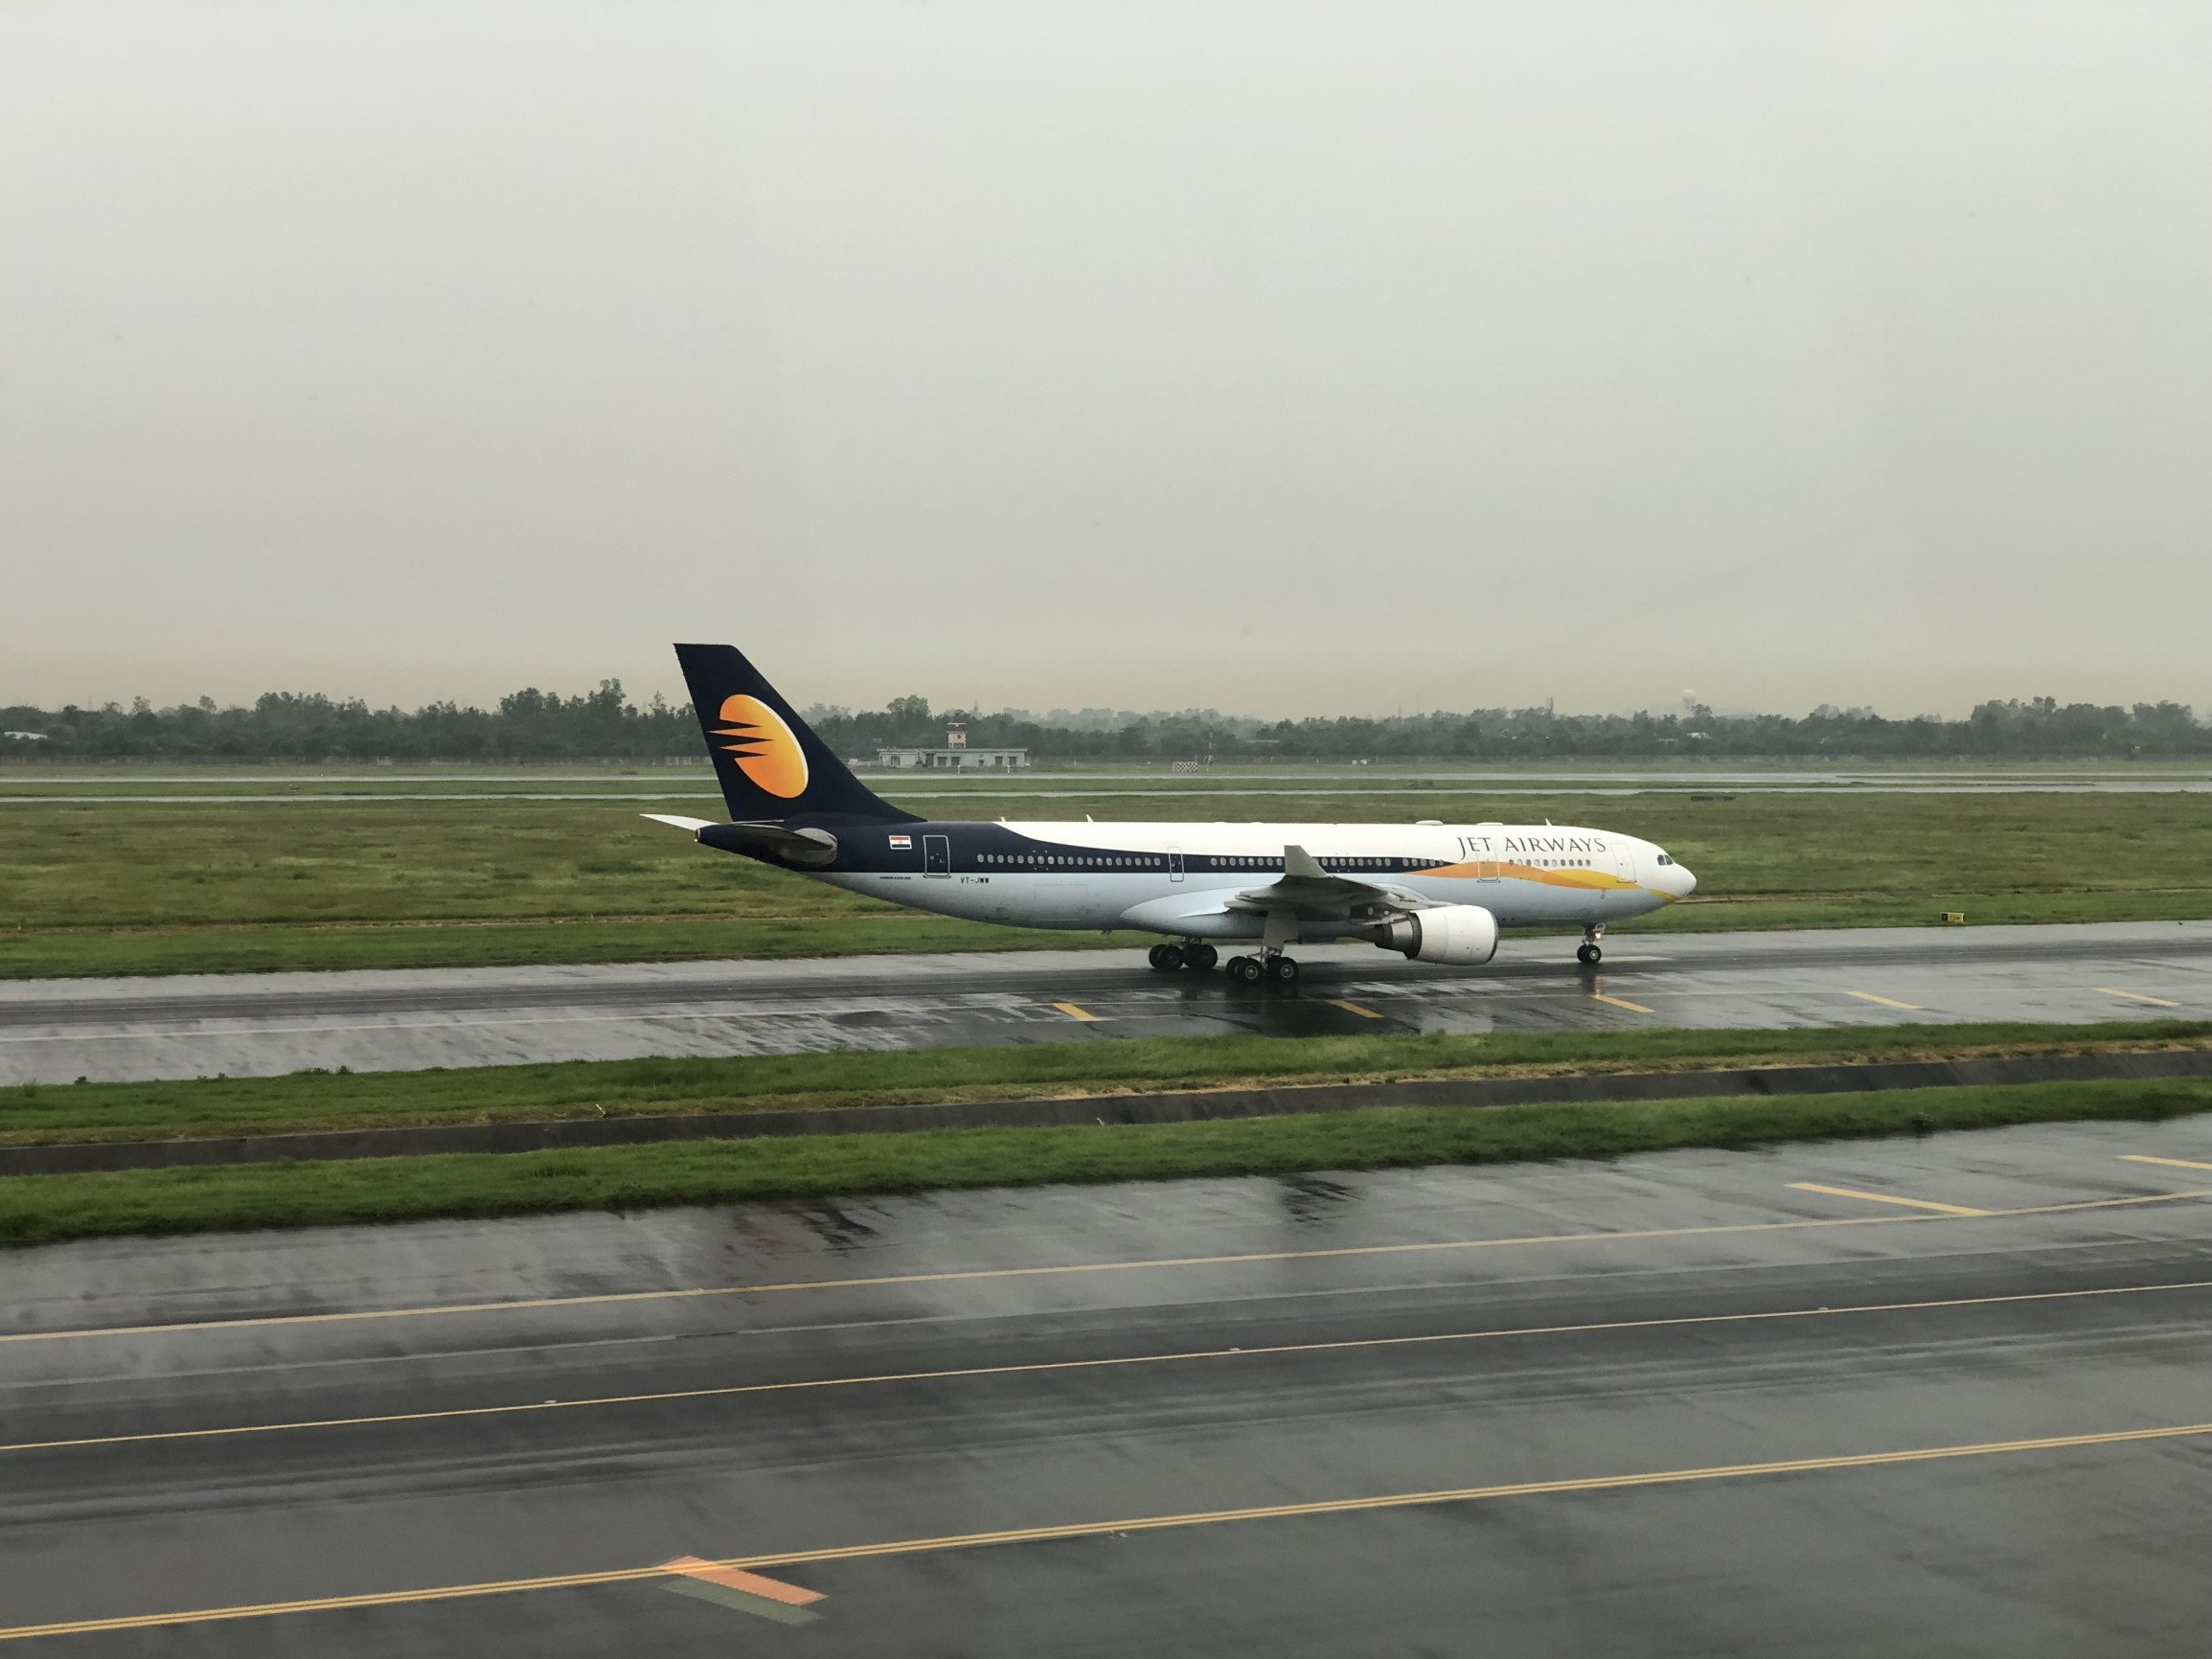 Jet Airways: More than an Airline, a Carrier of Memories